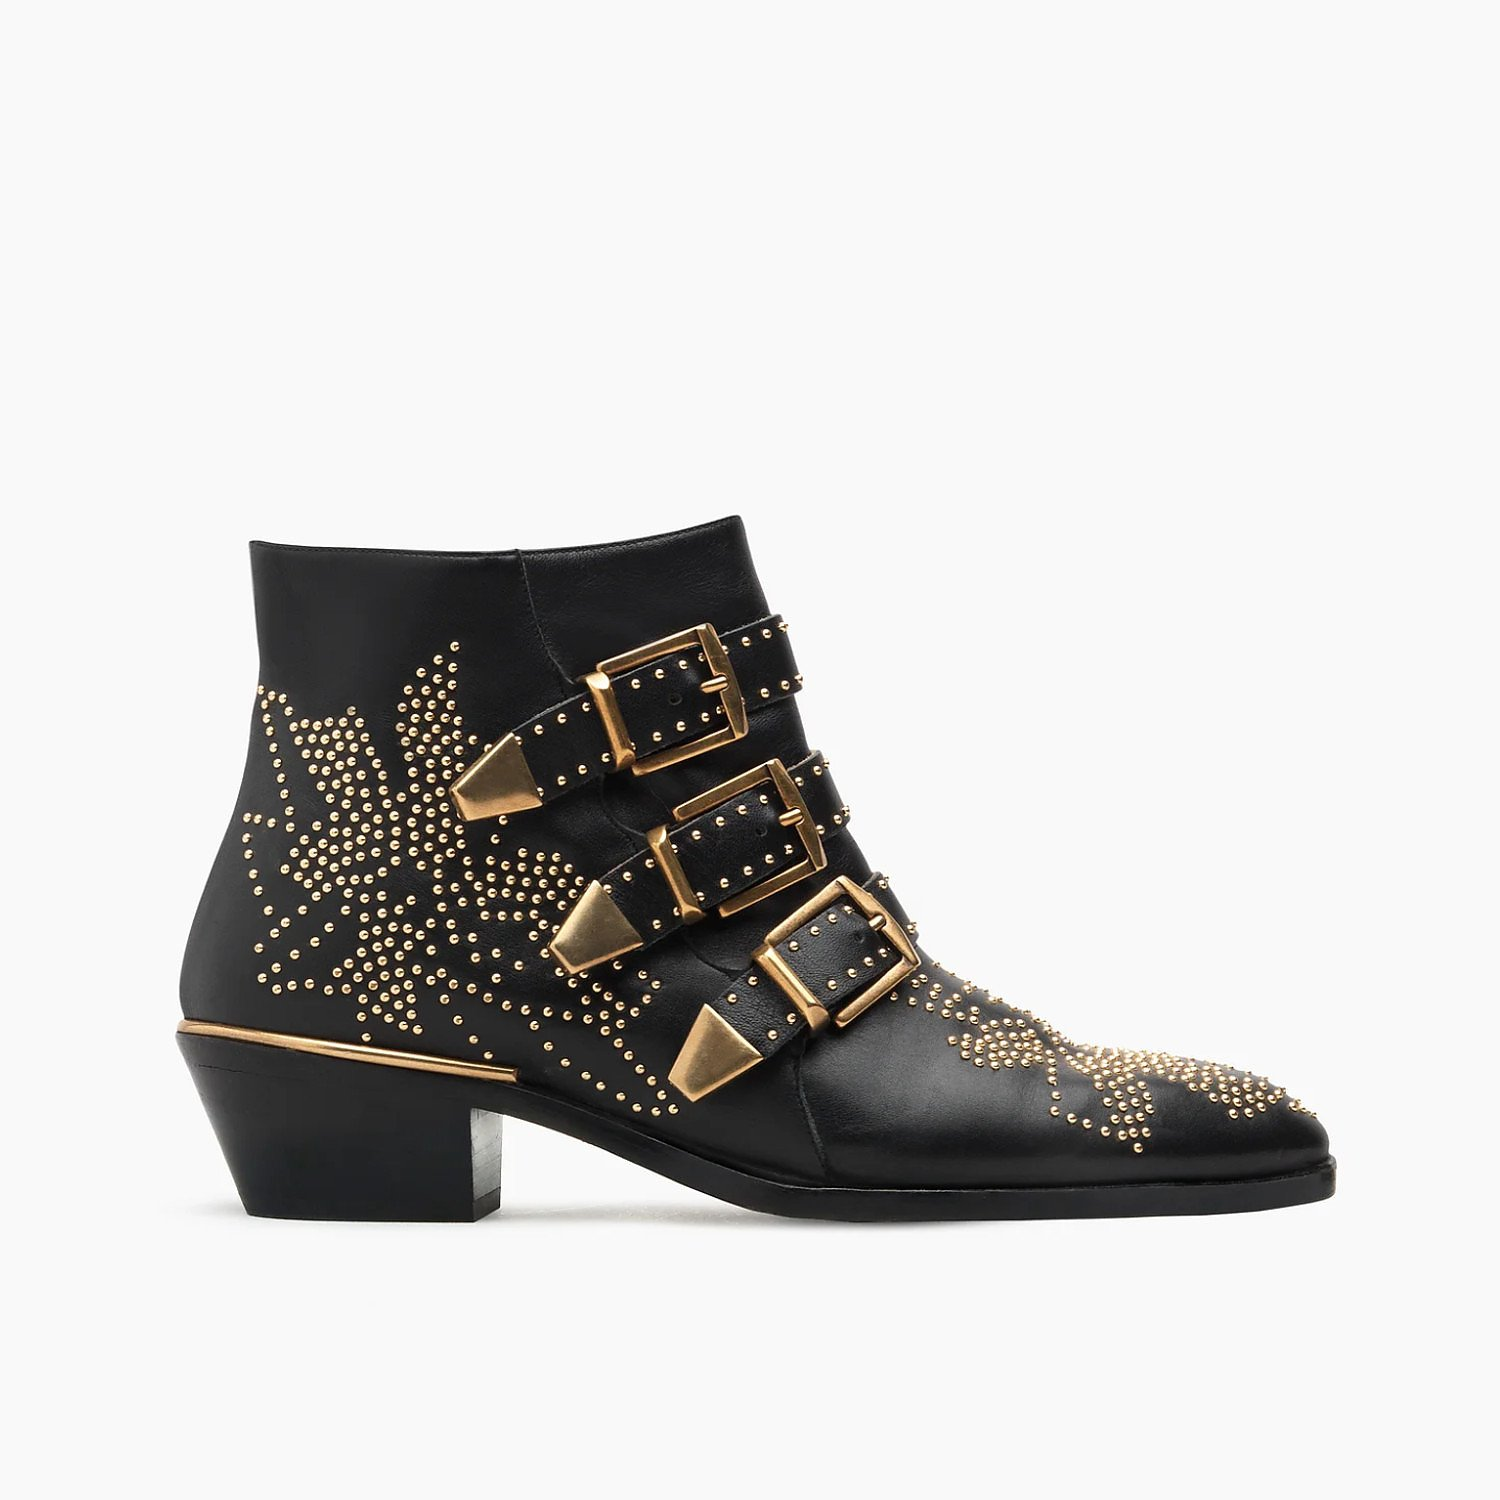 Chloé Susanna Boots with Gold Detail